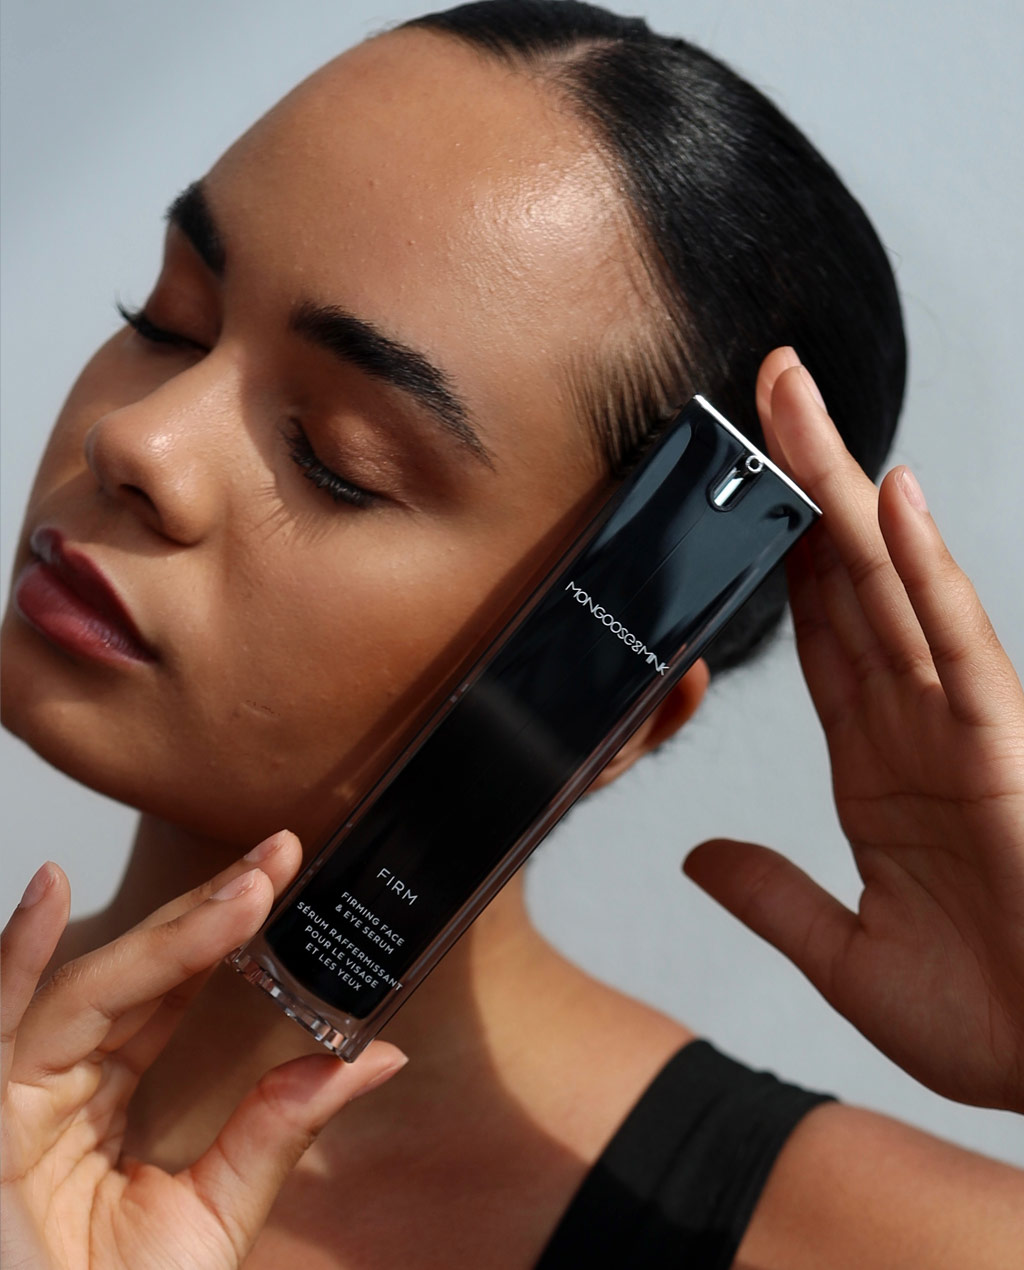 Model putting product next to face